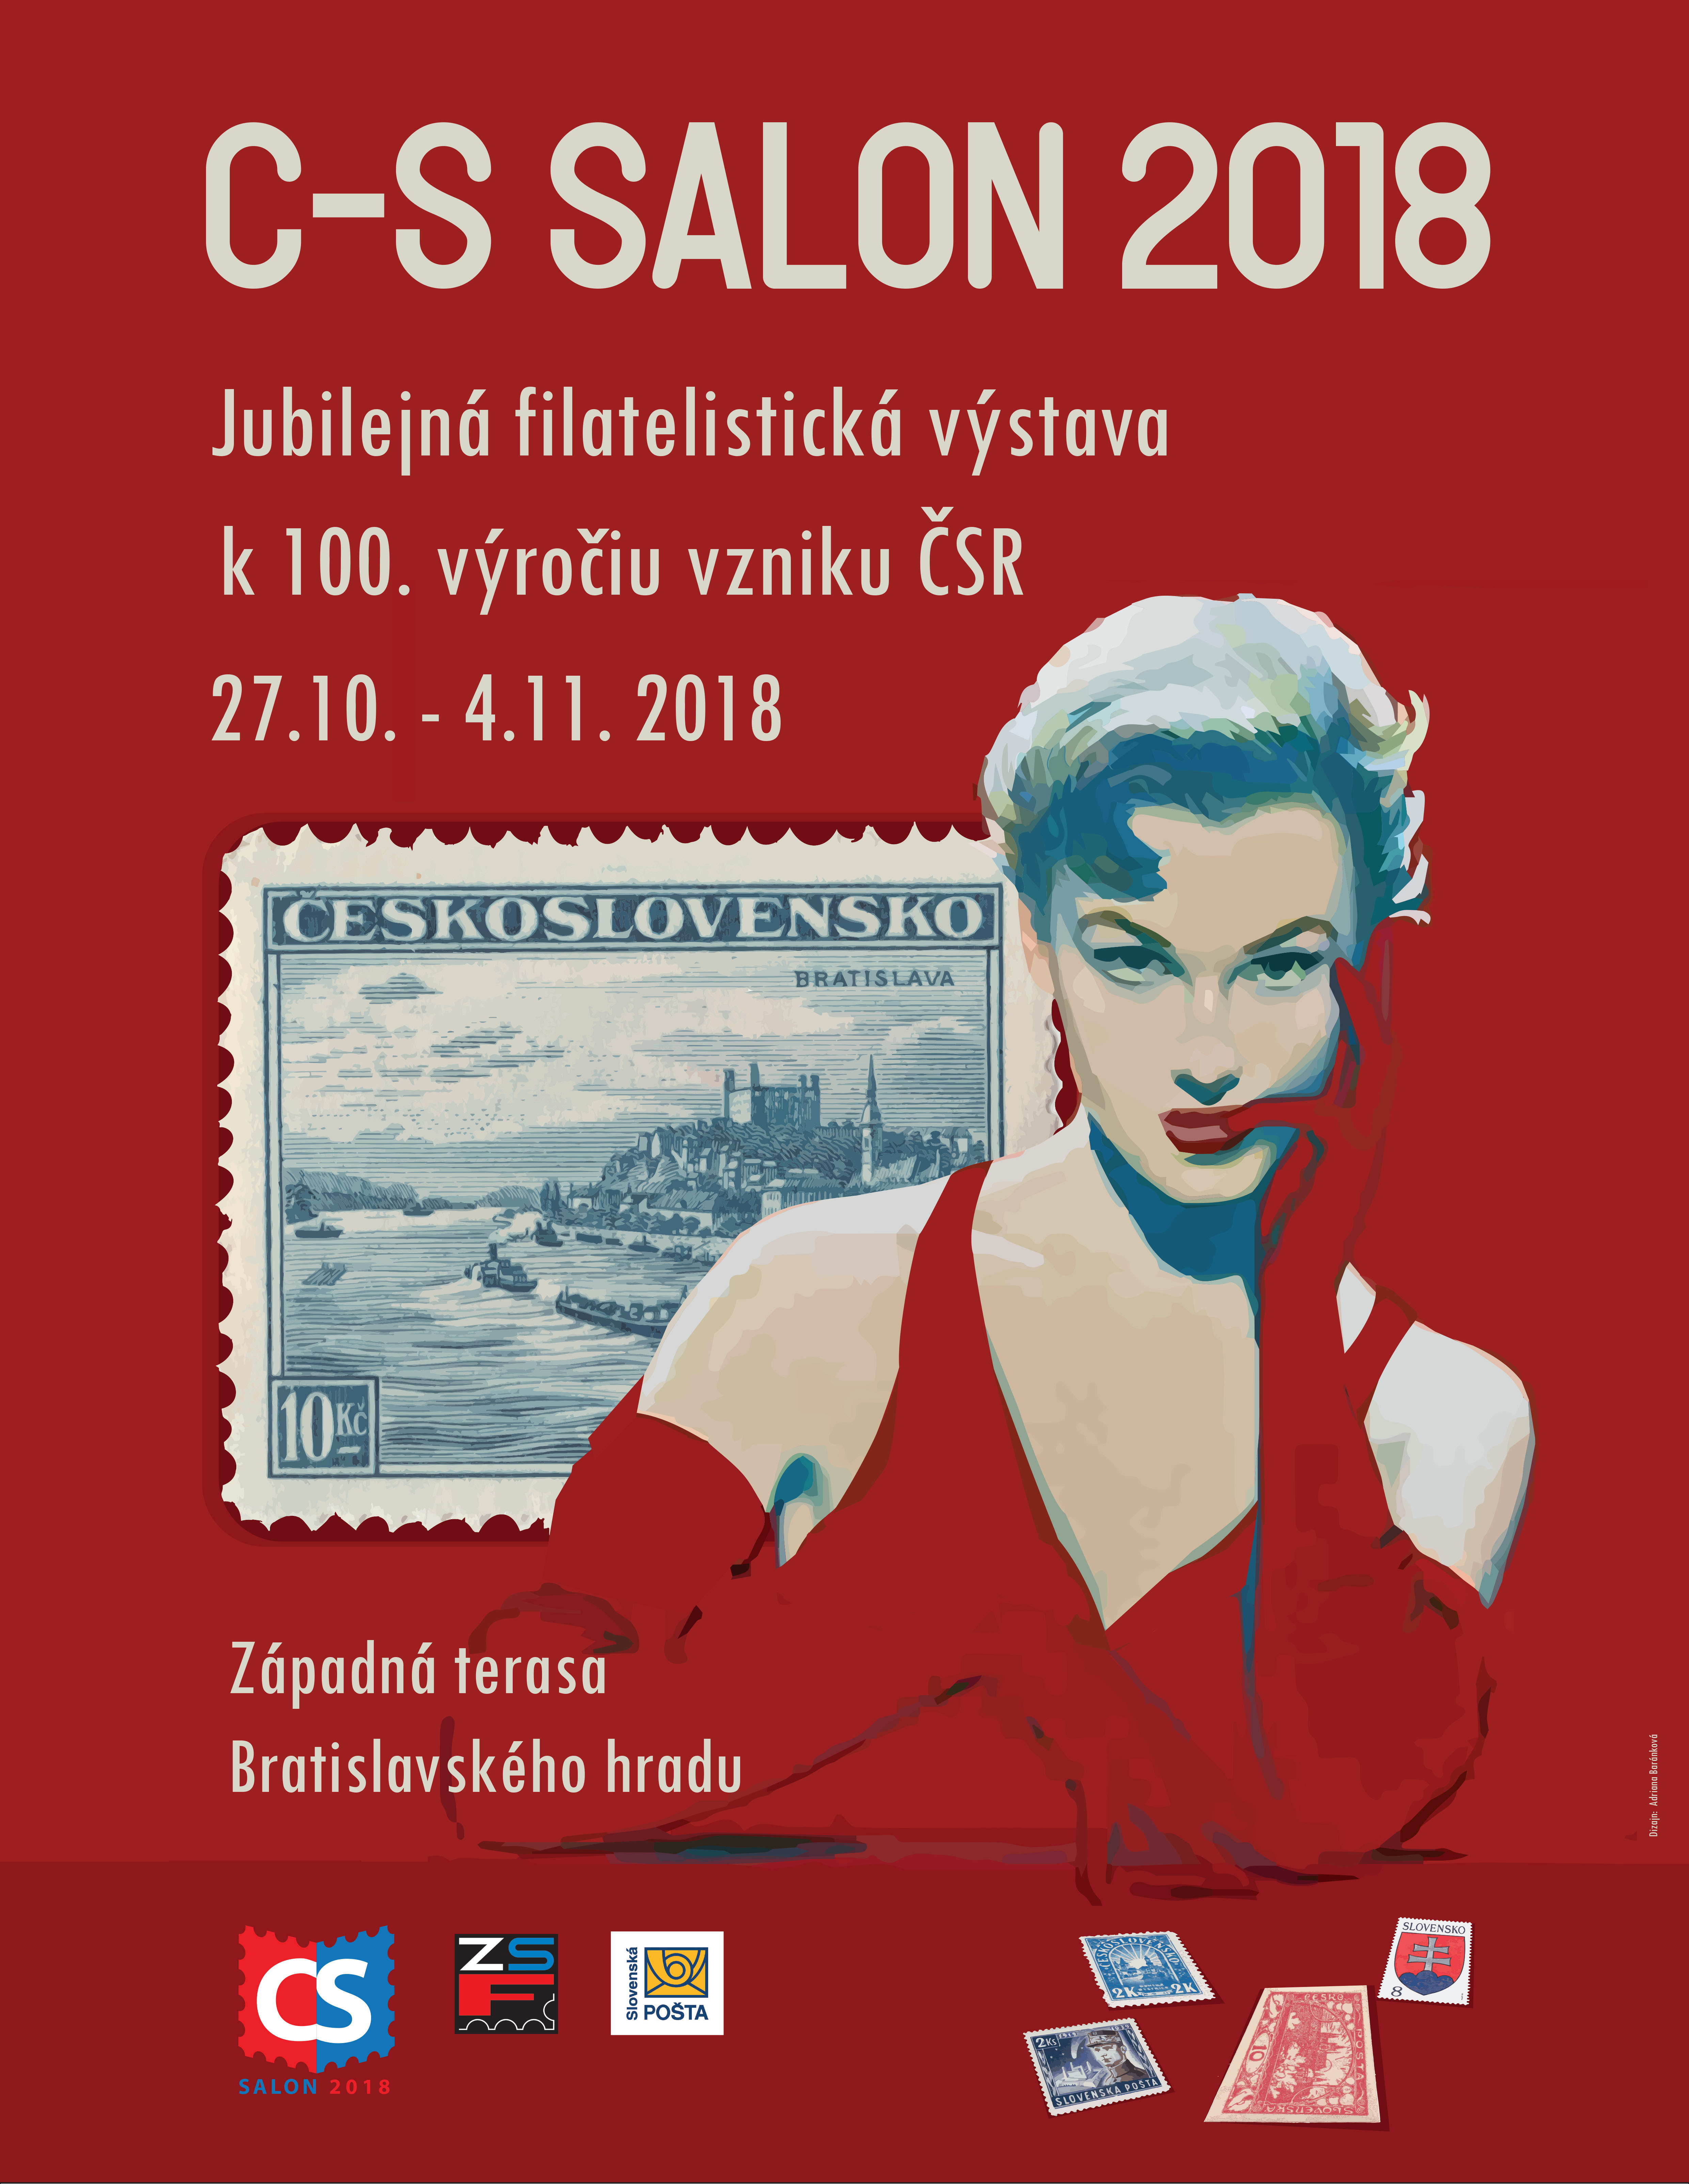 Exhibitions and exhibits Jubilee Philatelic Exhibition C-S SALON 2018 in Bratislava - evaluation